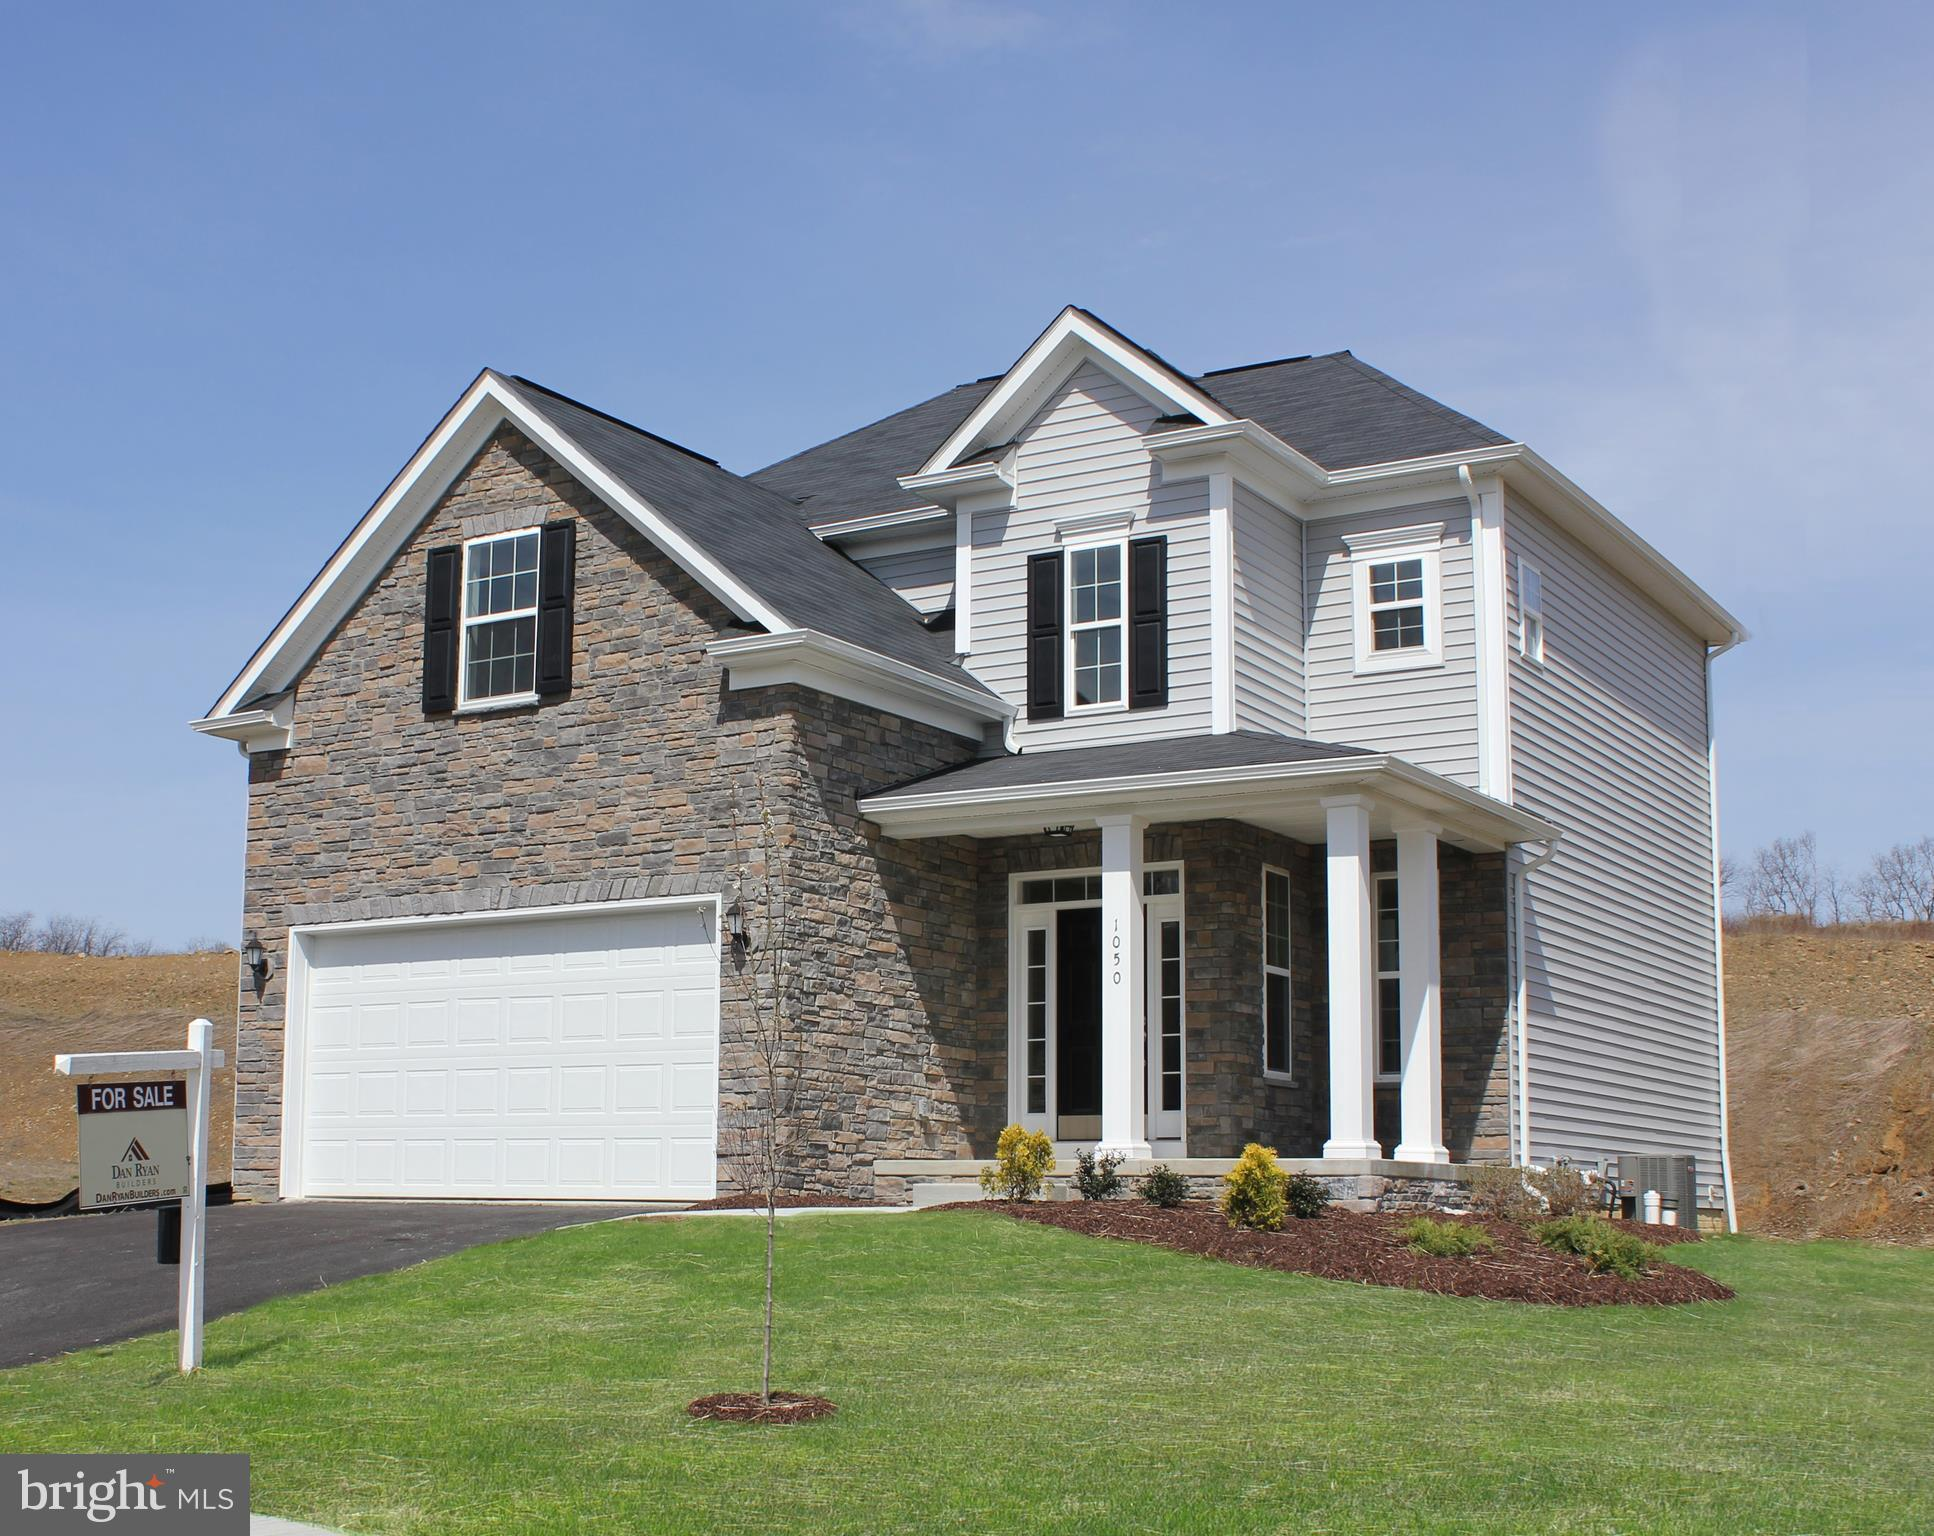 0 STRATHMORE WAY PENROSE PLAN, MARTINSBURG, WV 25402